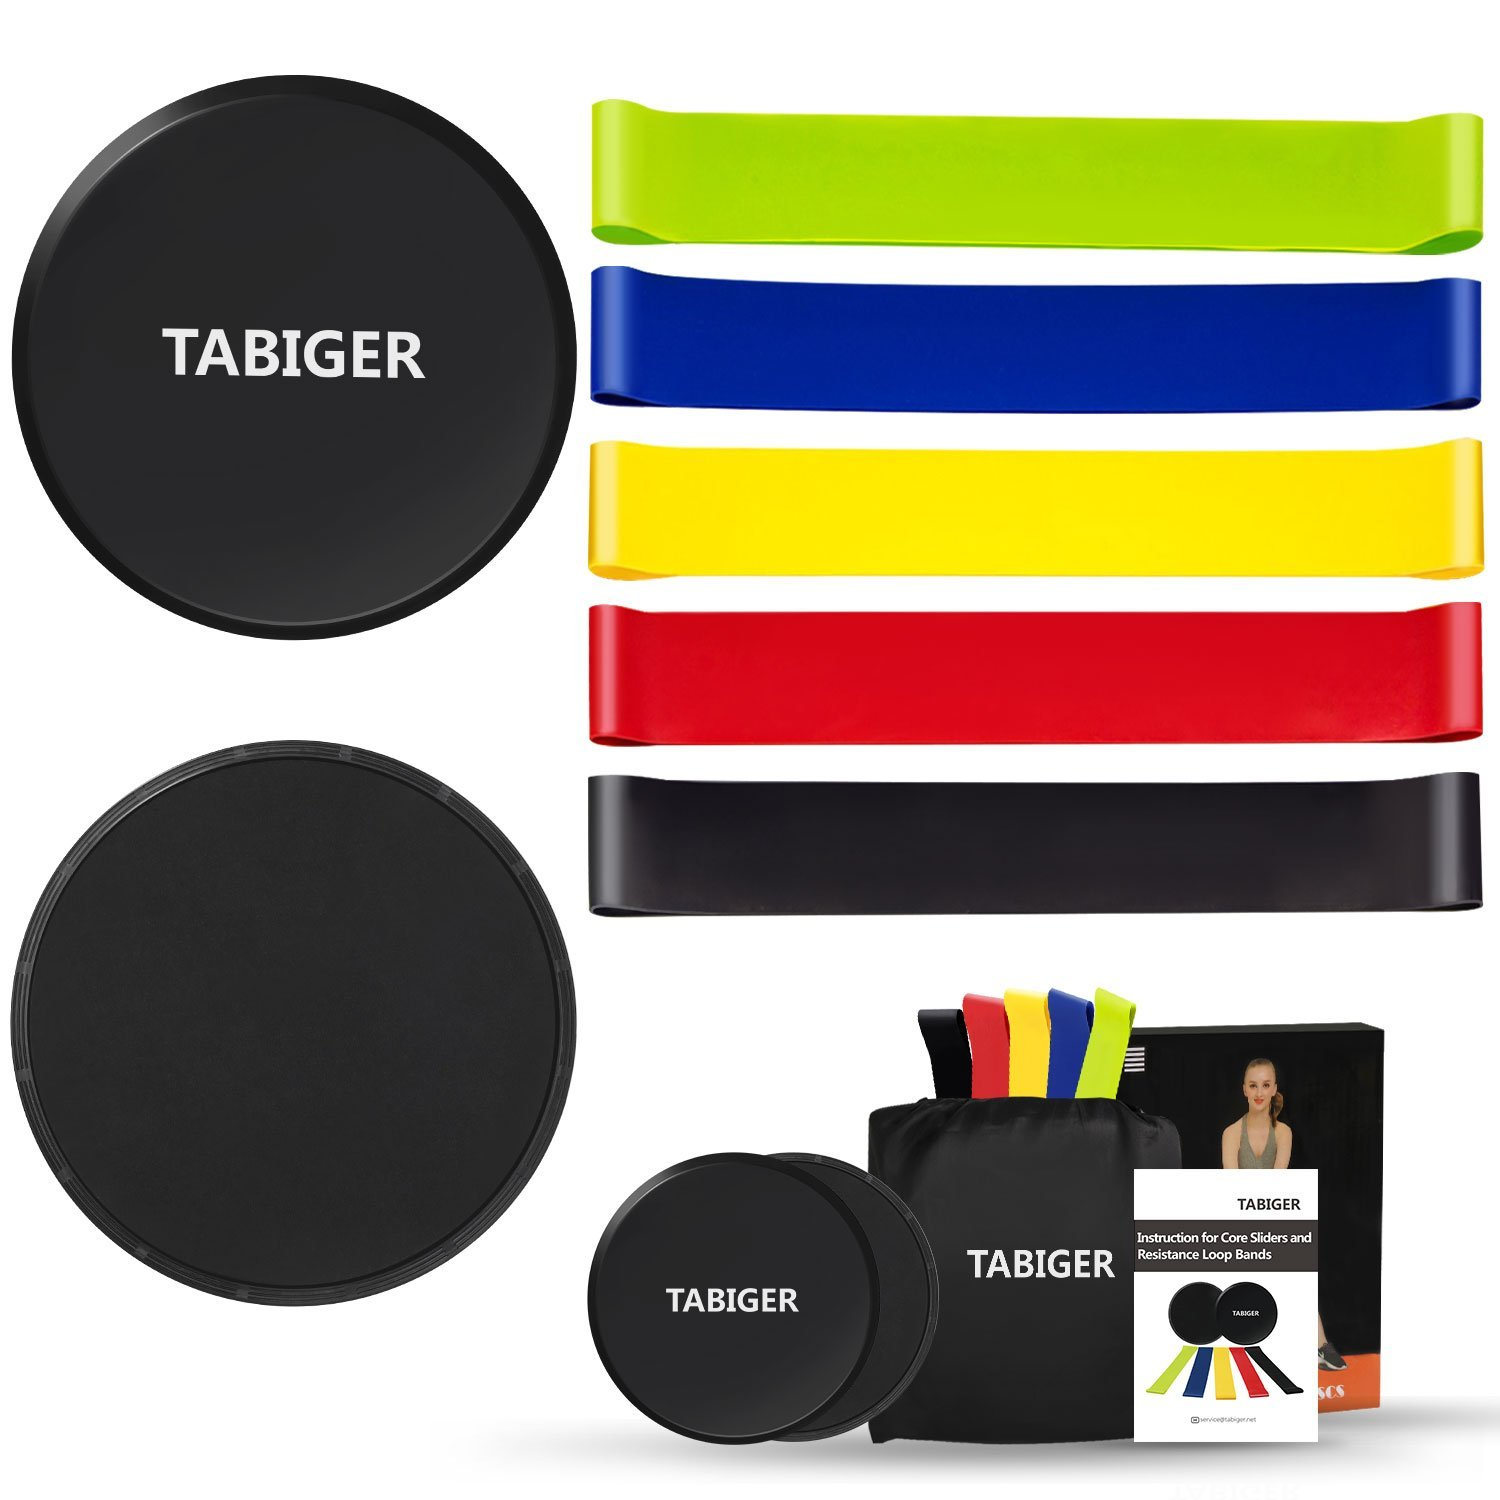 Tabiger Resistance Bands for Legs and Butt, Core Sliders and Resistance Bands Set, 5 Fitness Bands and 2 Gliding Discs with Carry Bag for Sport, Abdominal Exercise, Strengthen, Physical Therapy by Tabiger (Image #1)